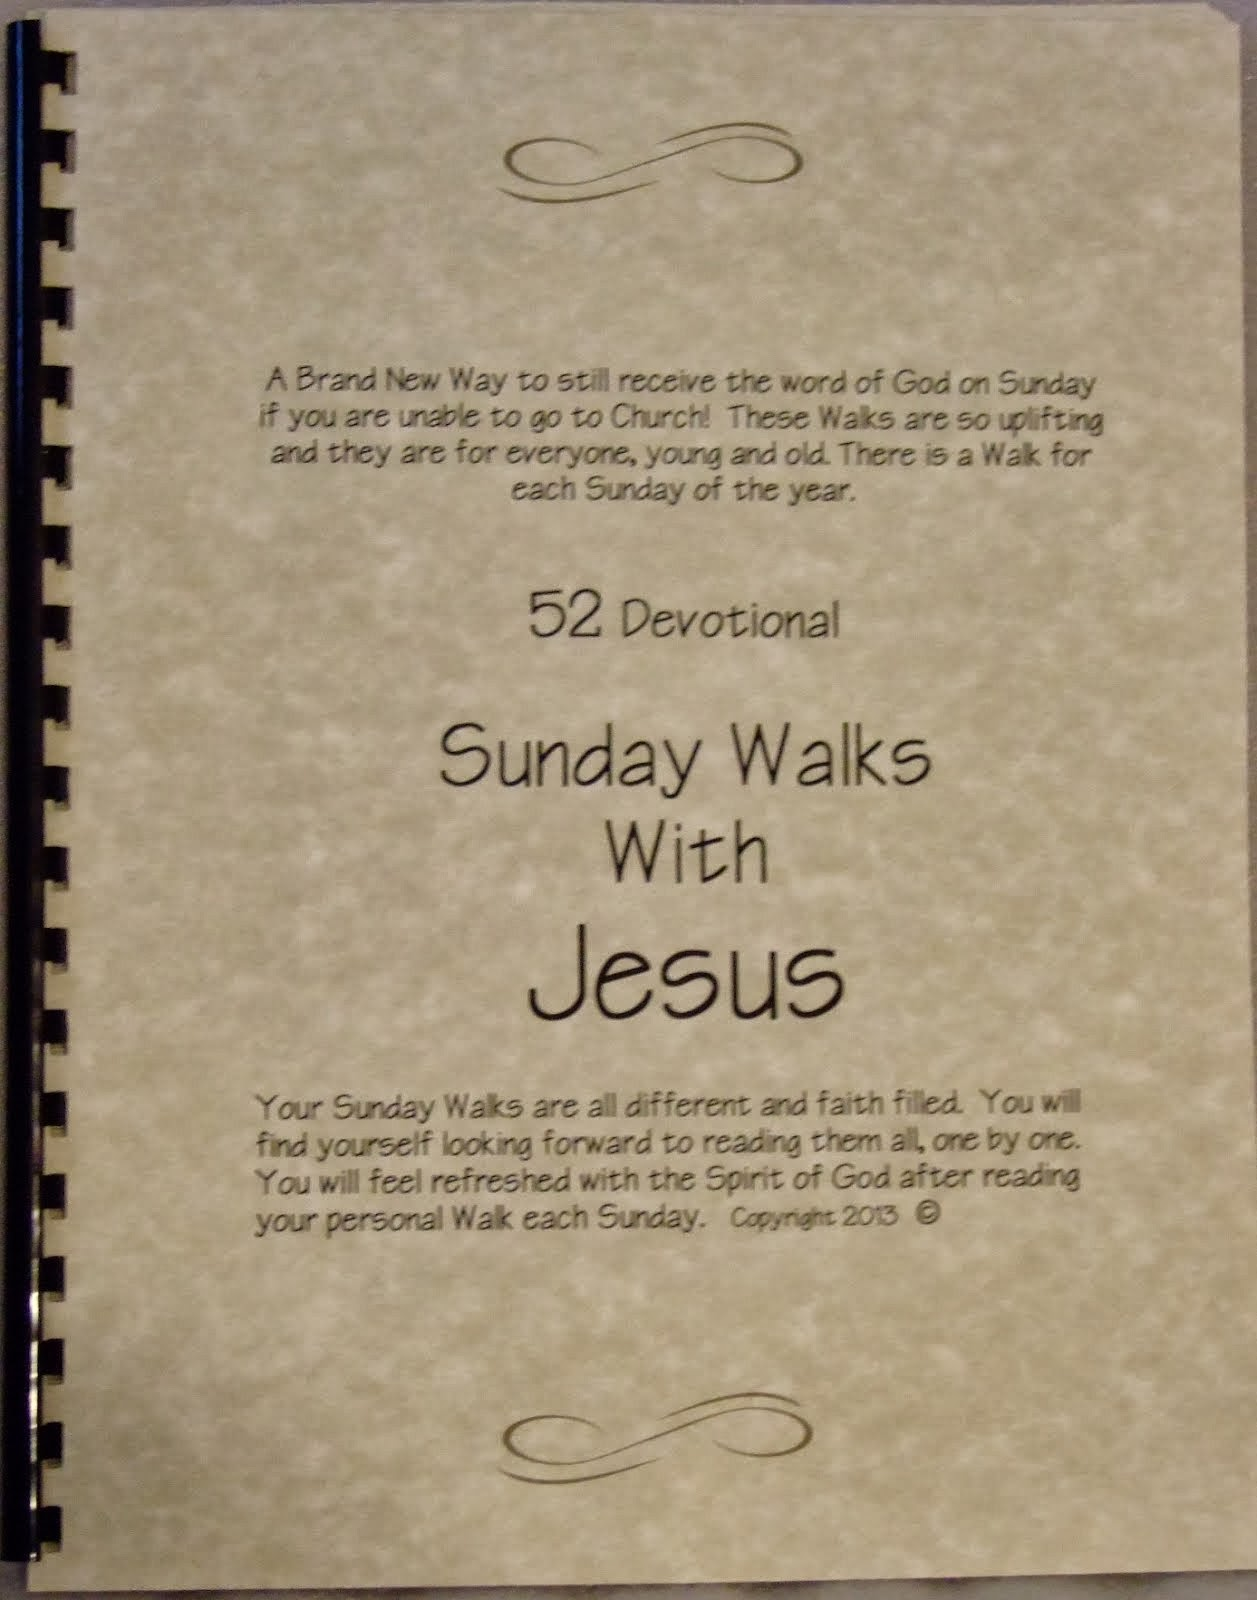 Sunday Walks with Jesus